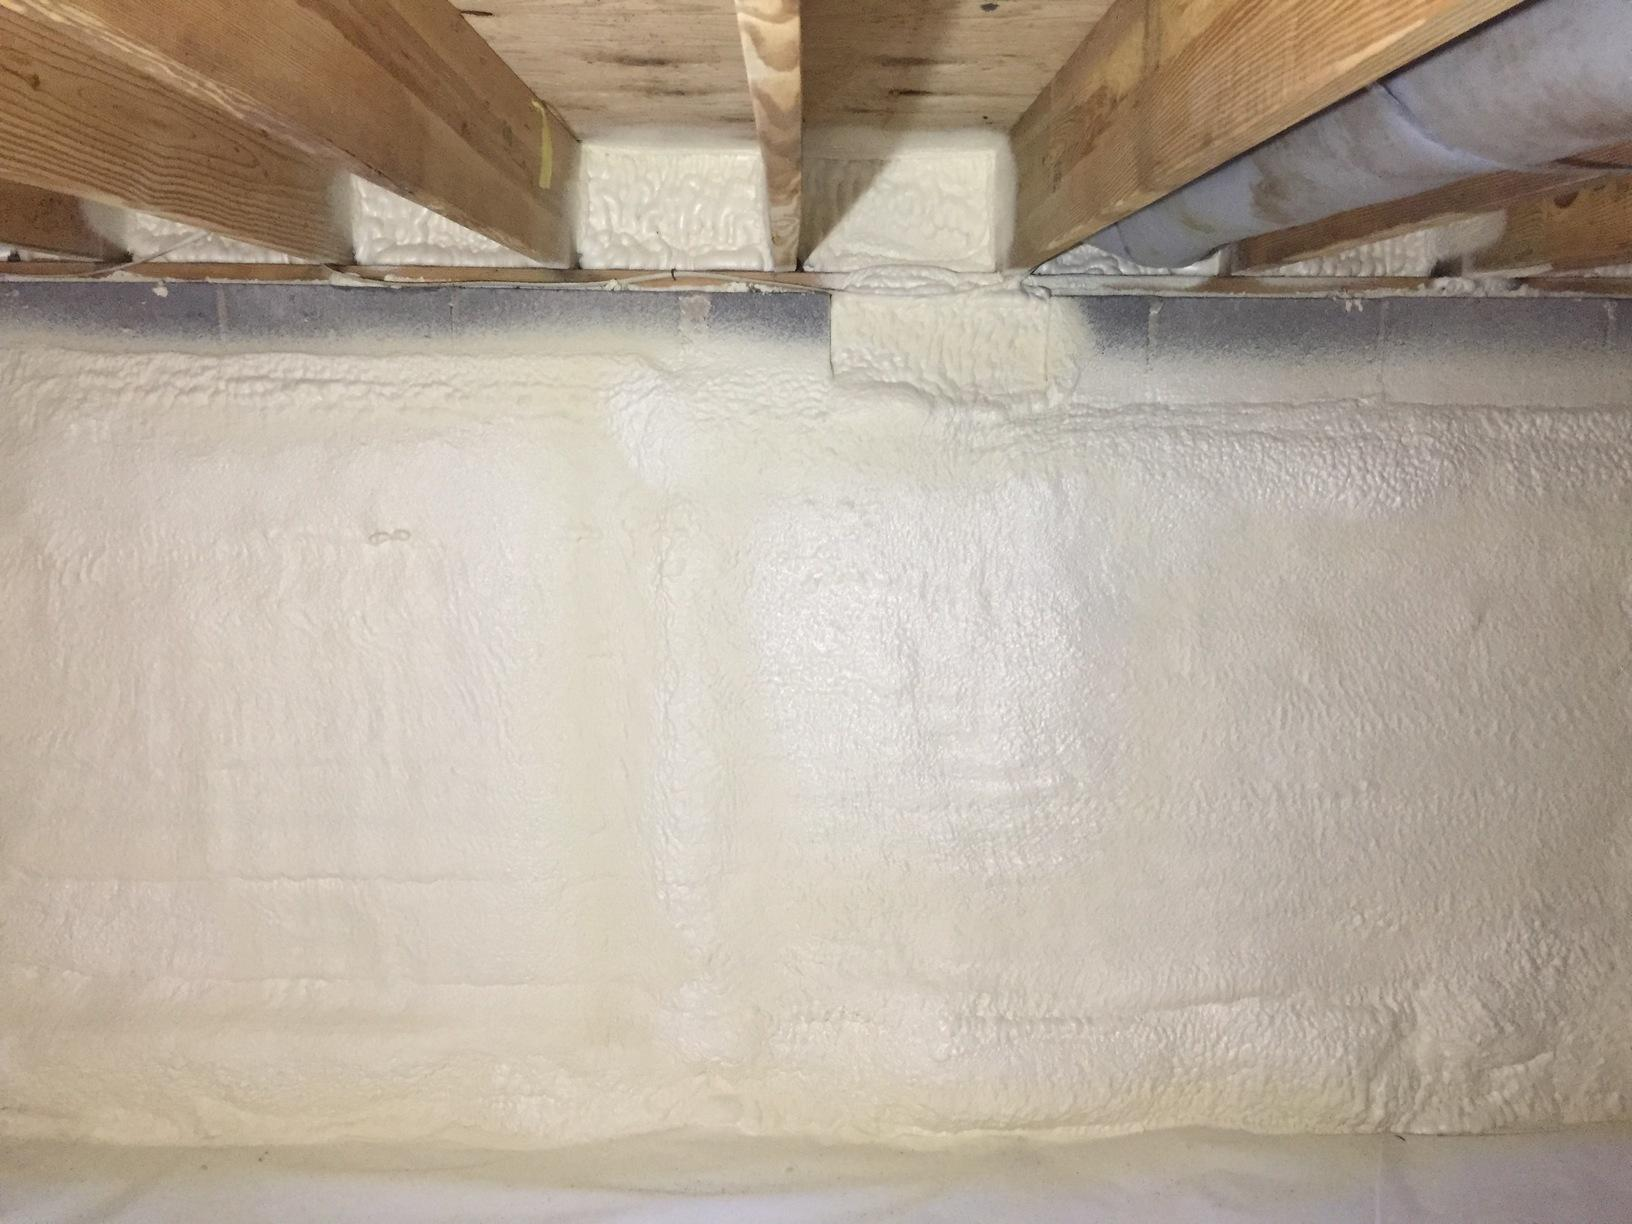 Spray Foam & Vapor Barrier - Richmond Crawl Space Encapsulation - After Photo